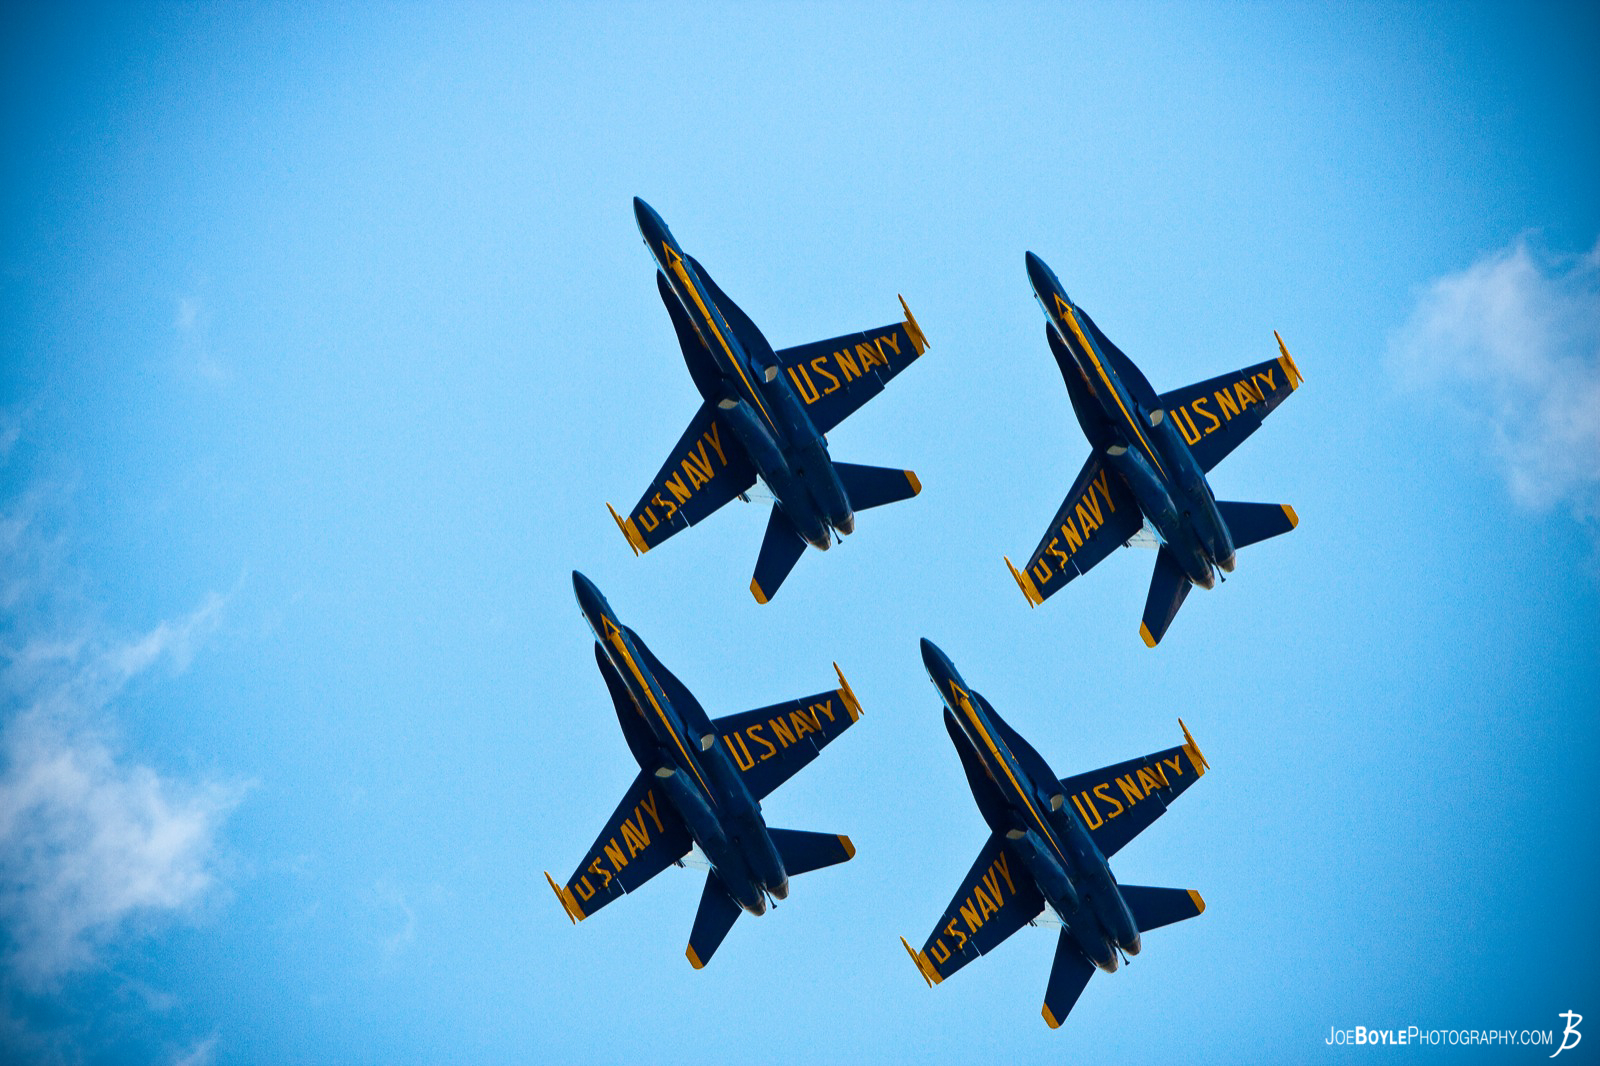 I was watching the Air Show in Cleveland Ohio and was able to capture this image! The Blue Angels!